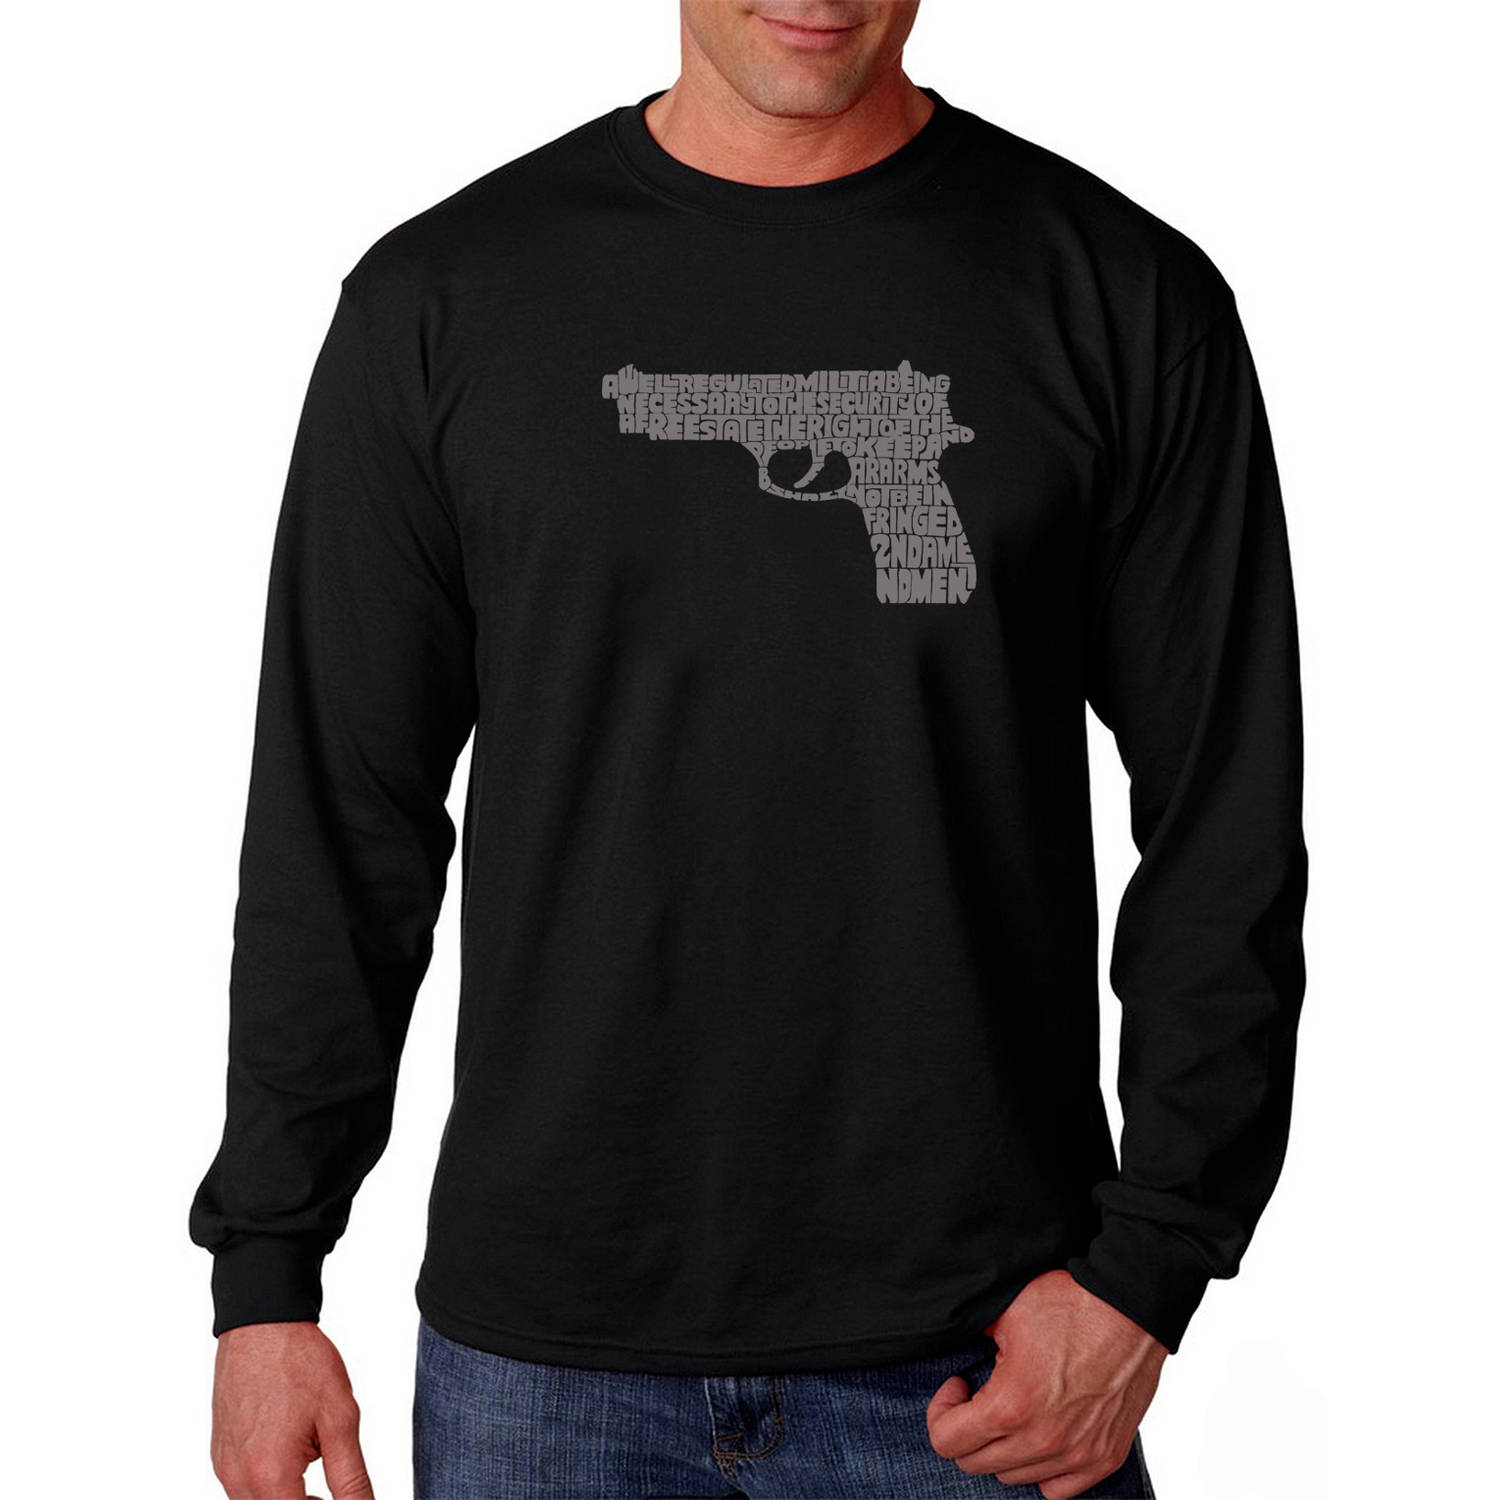 Los Angeles Pop Art Big Men's Long Sleeve T-shirt - Right to Bear Arms